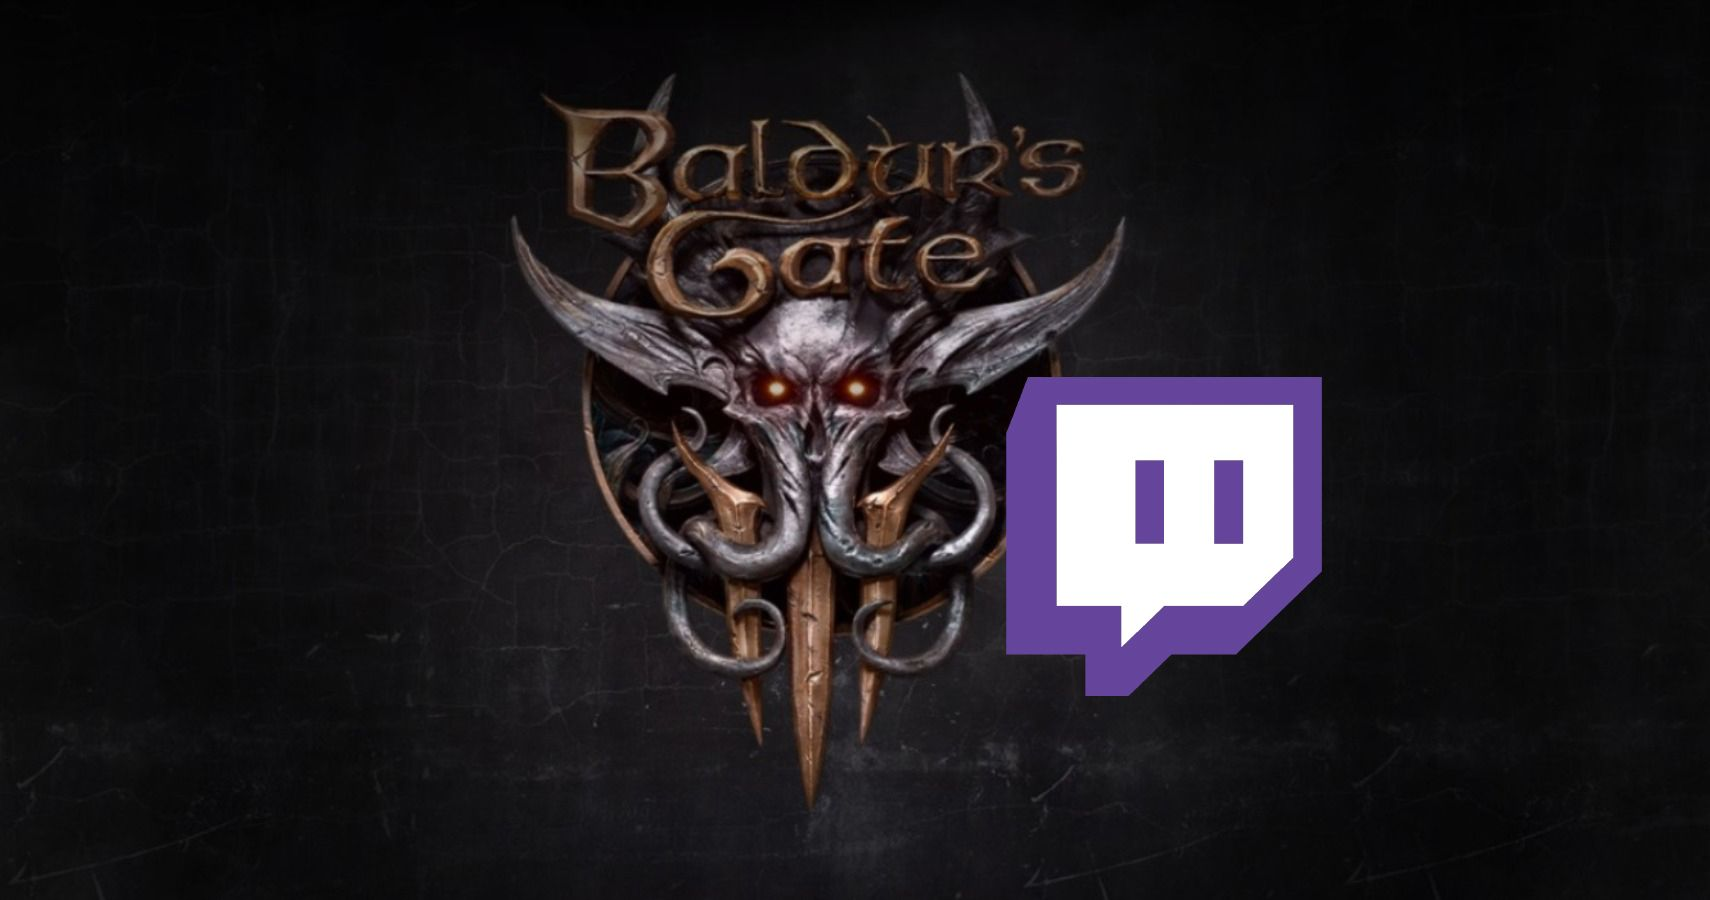 Baldur's Gate 3 Will Let Twitch Fans Vote On Player Decisions